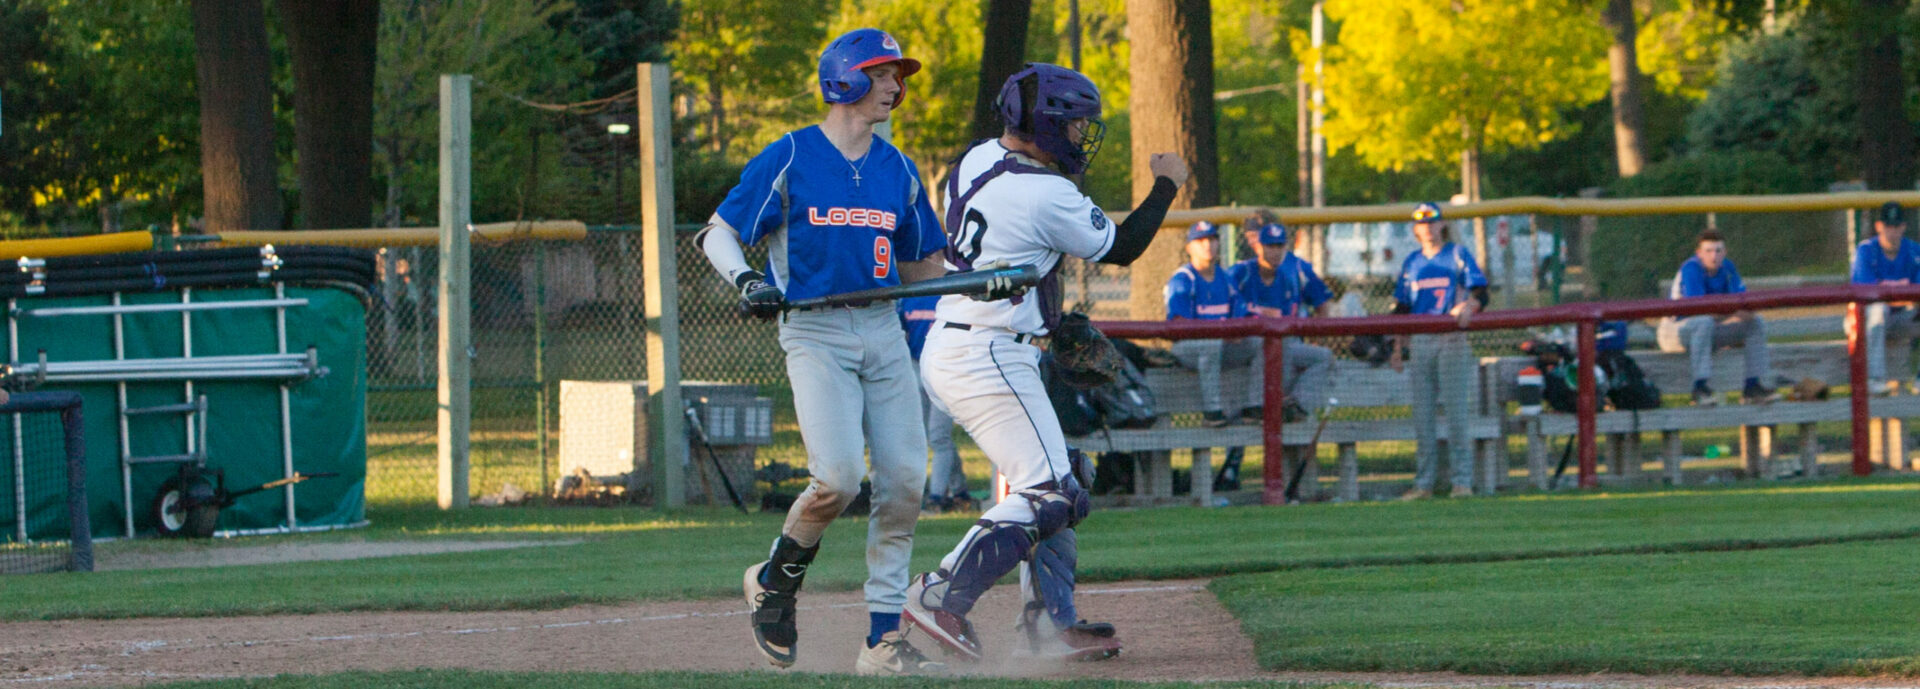 Clippers rebound from a six-run deficit, and get their first home victory of the season, with an 8-7 win over Lima Locos